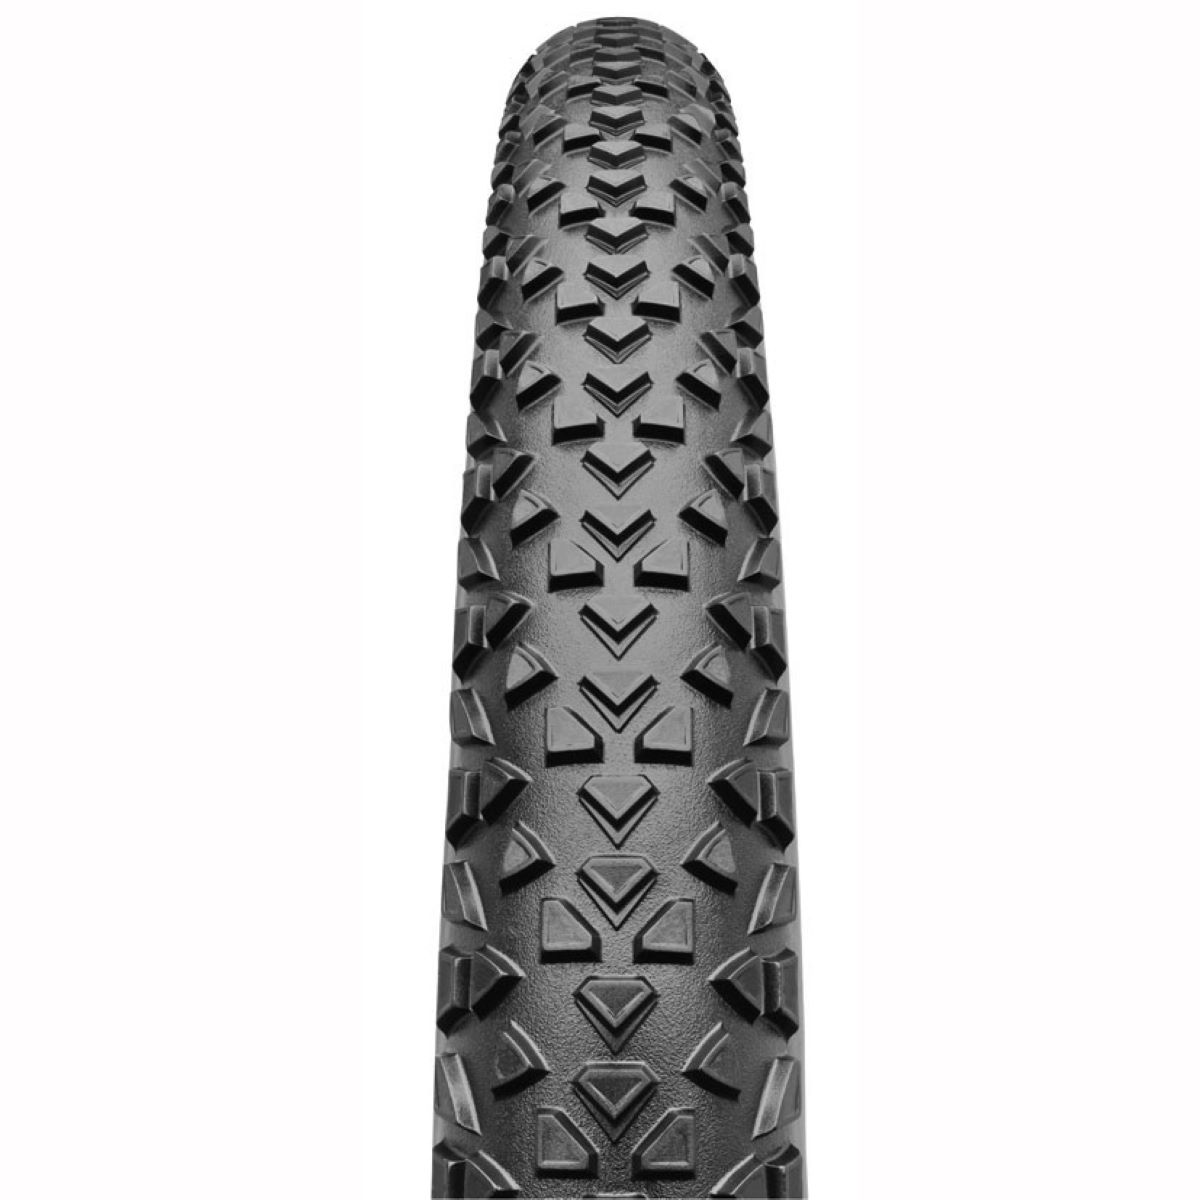 Pneu VTT Continental Race King Pure Grip 29 pouces (souple) - 2.2' 29'